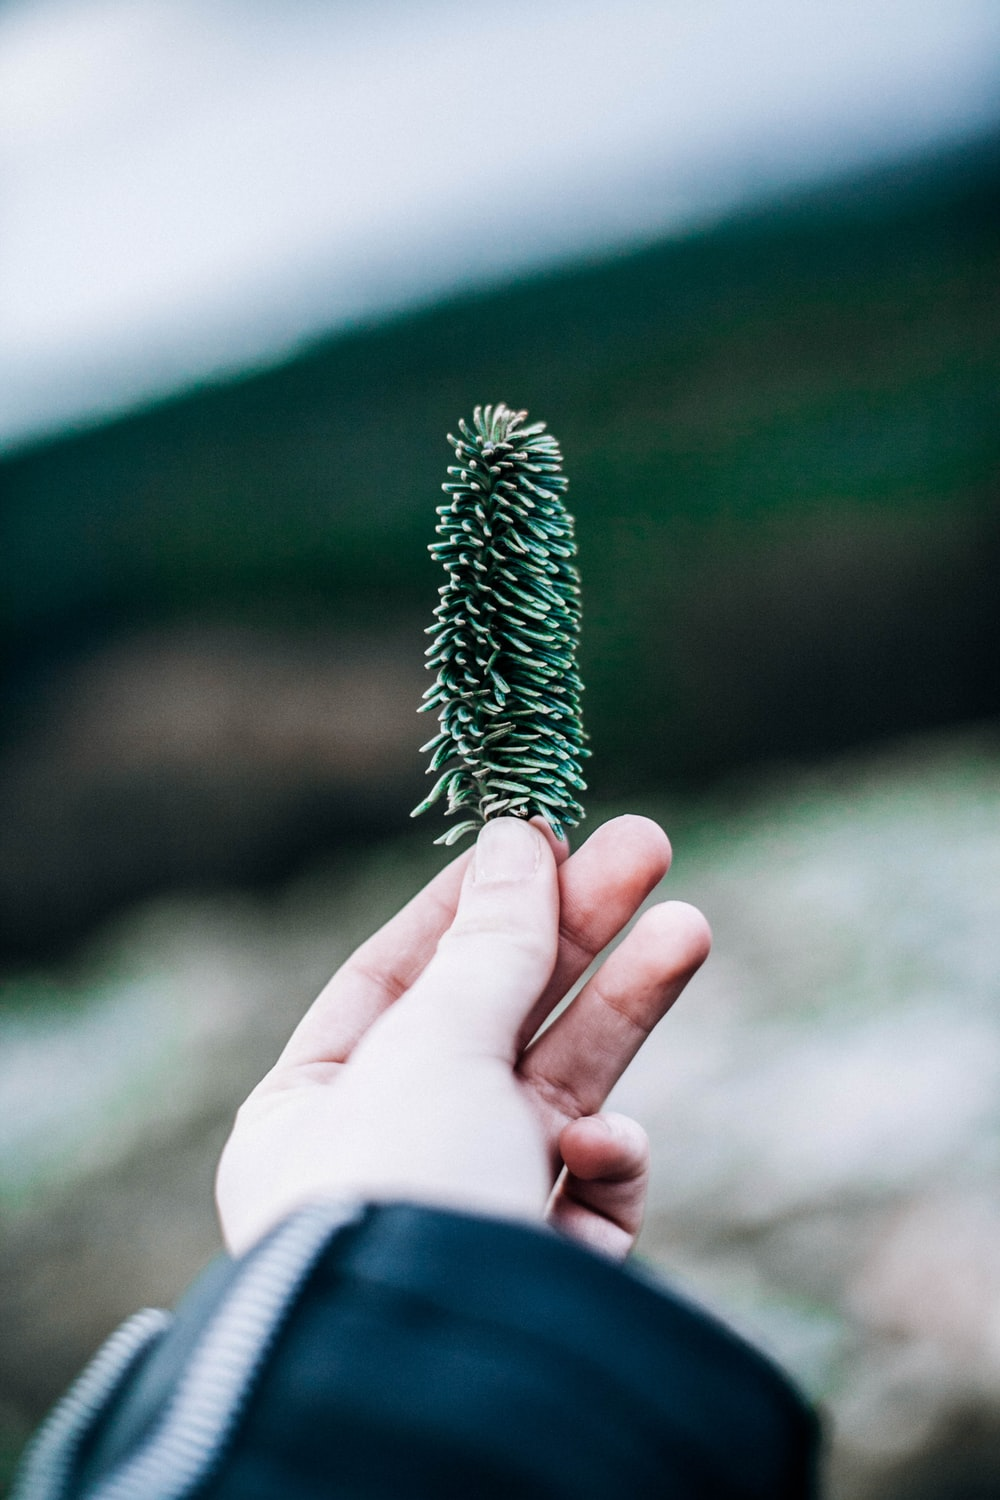 person holding green leaf plant closeup photography